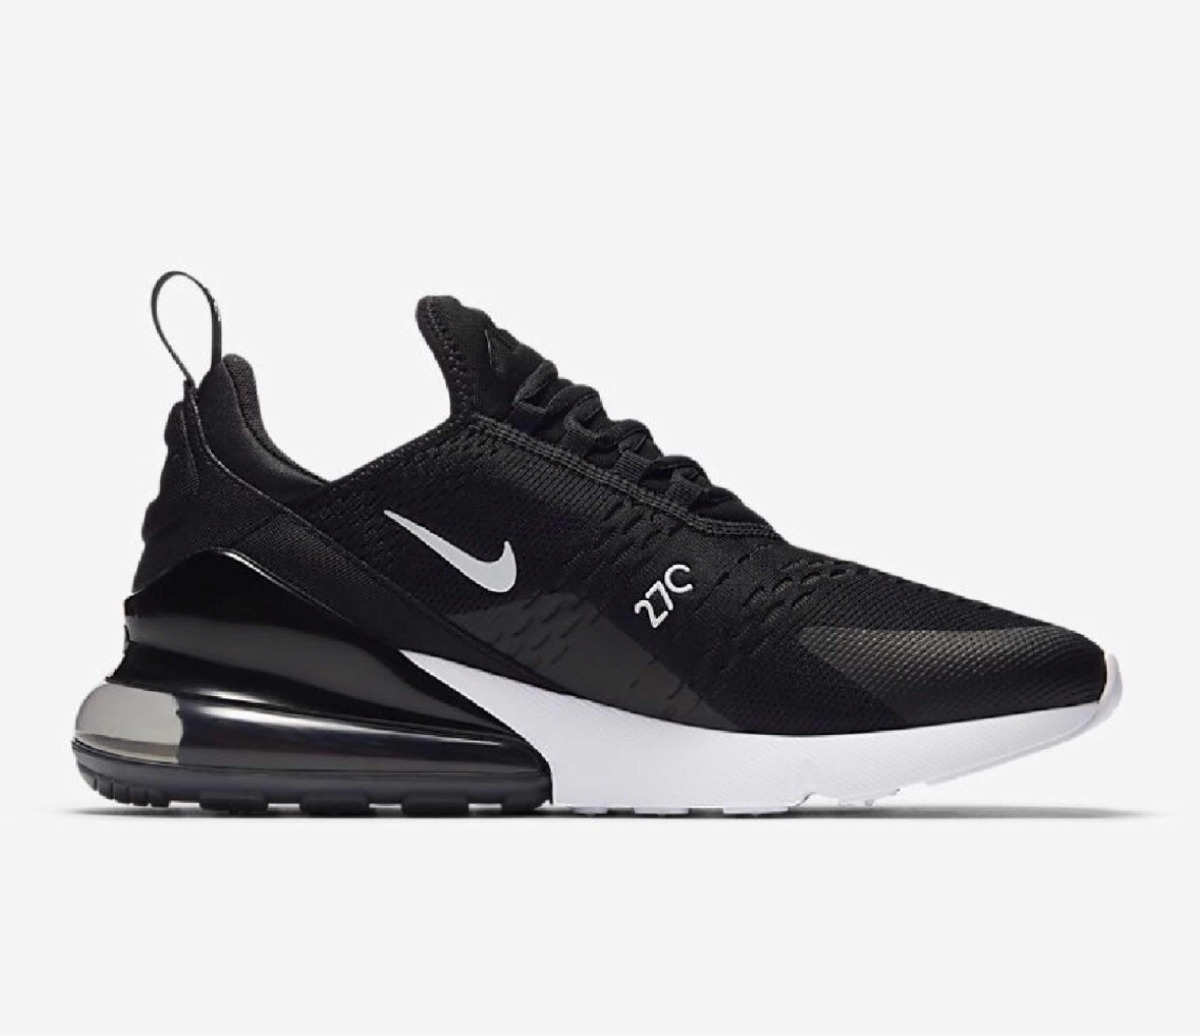 tenis outlet nike air max 270 negro. Cargando zoom. 8e4b73d67c8c6